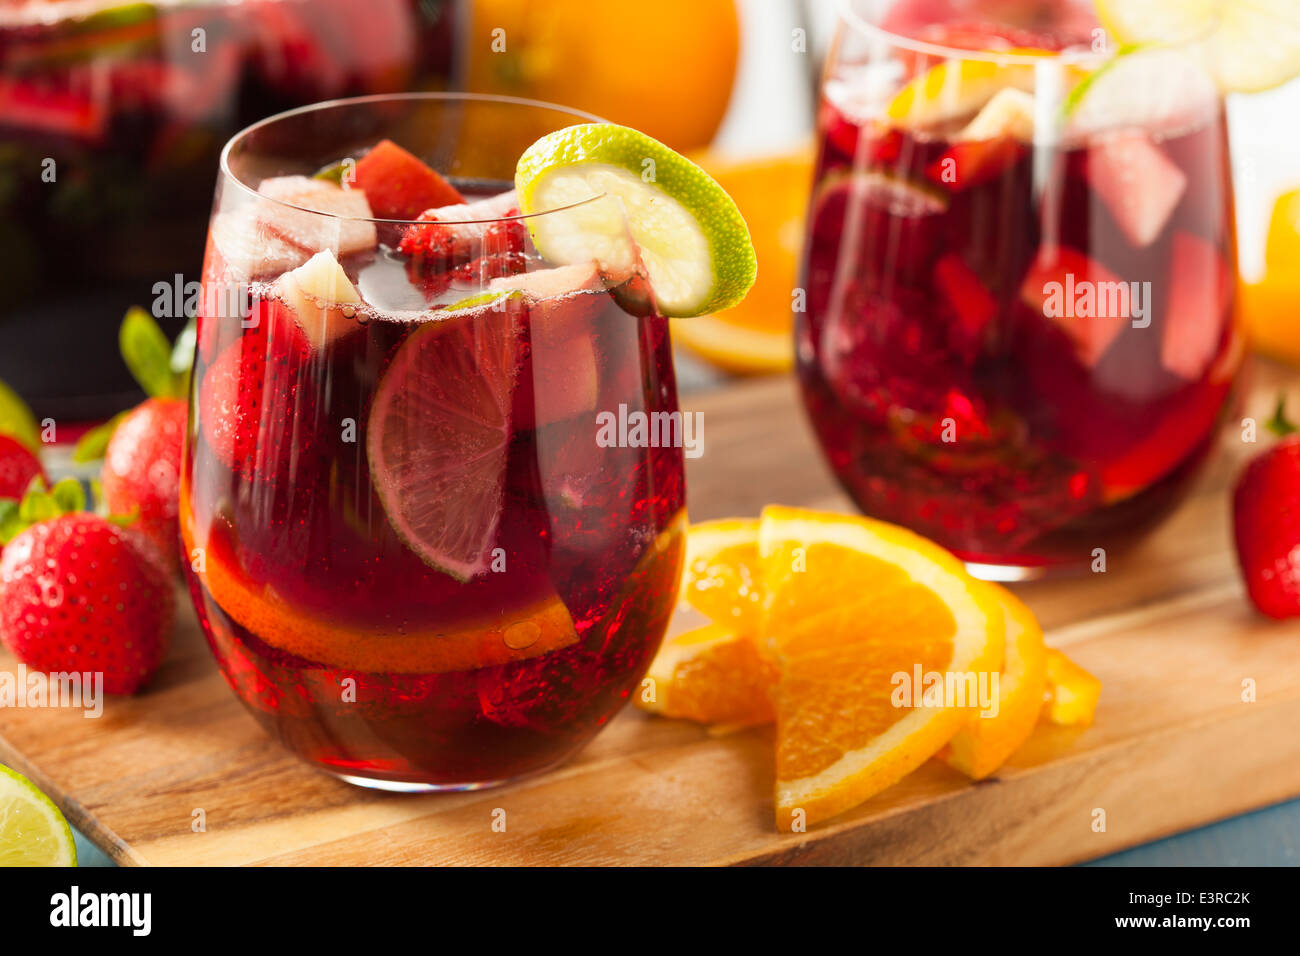 Homemade Delicious Red Sangria with Limes Oranges and Apples - Stock Image